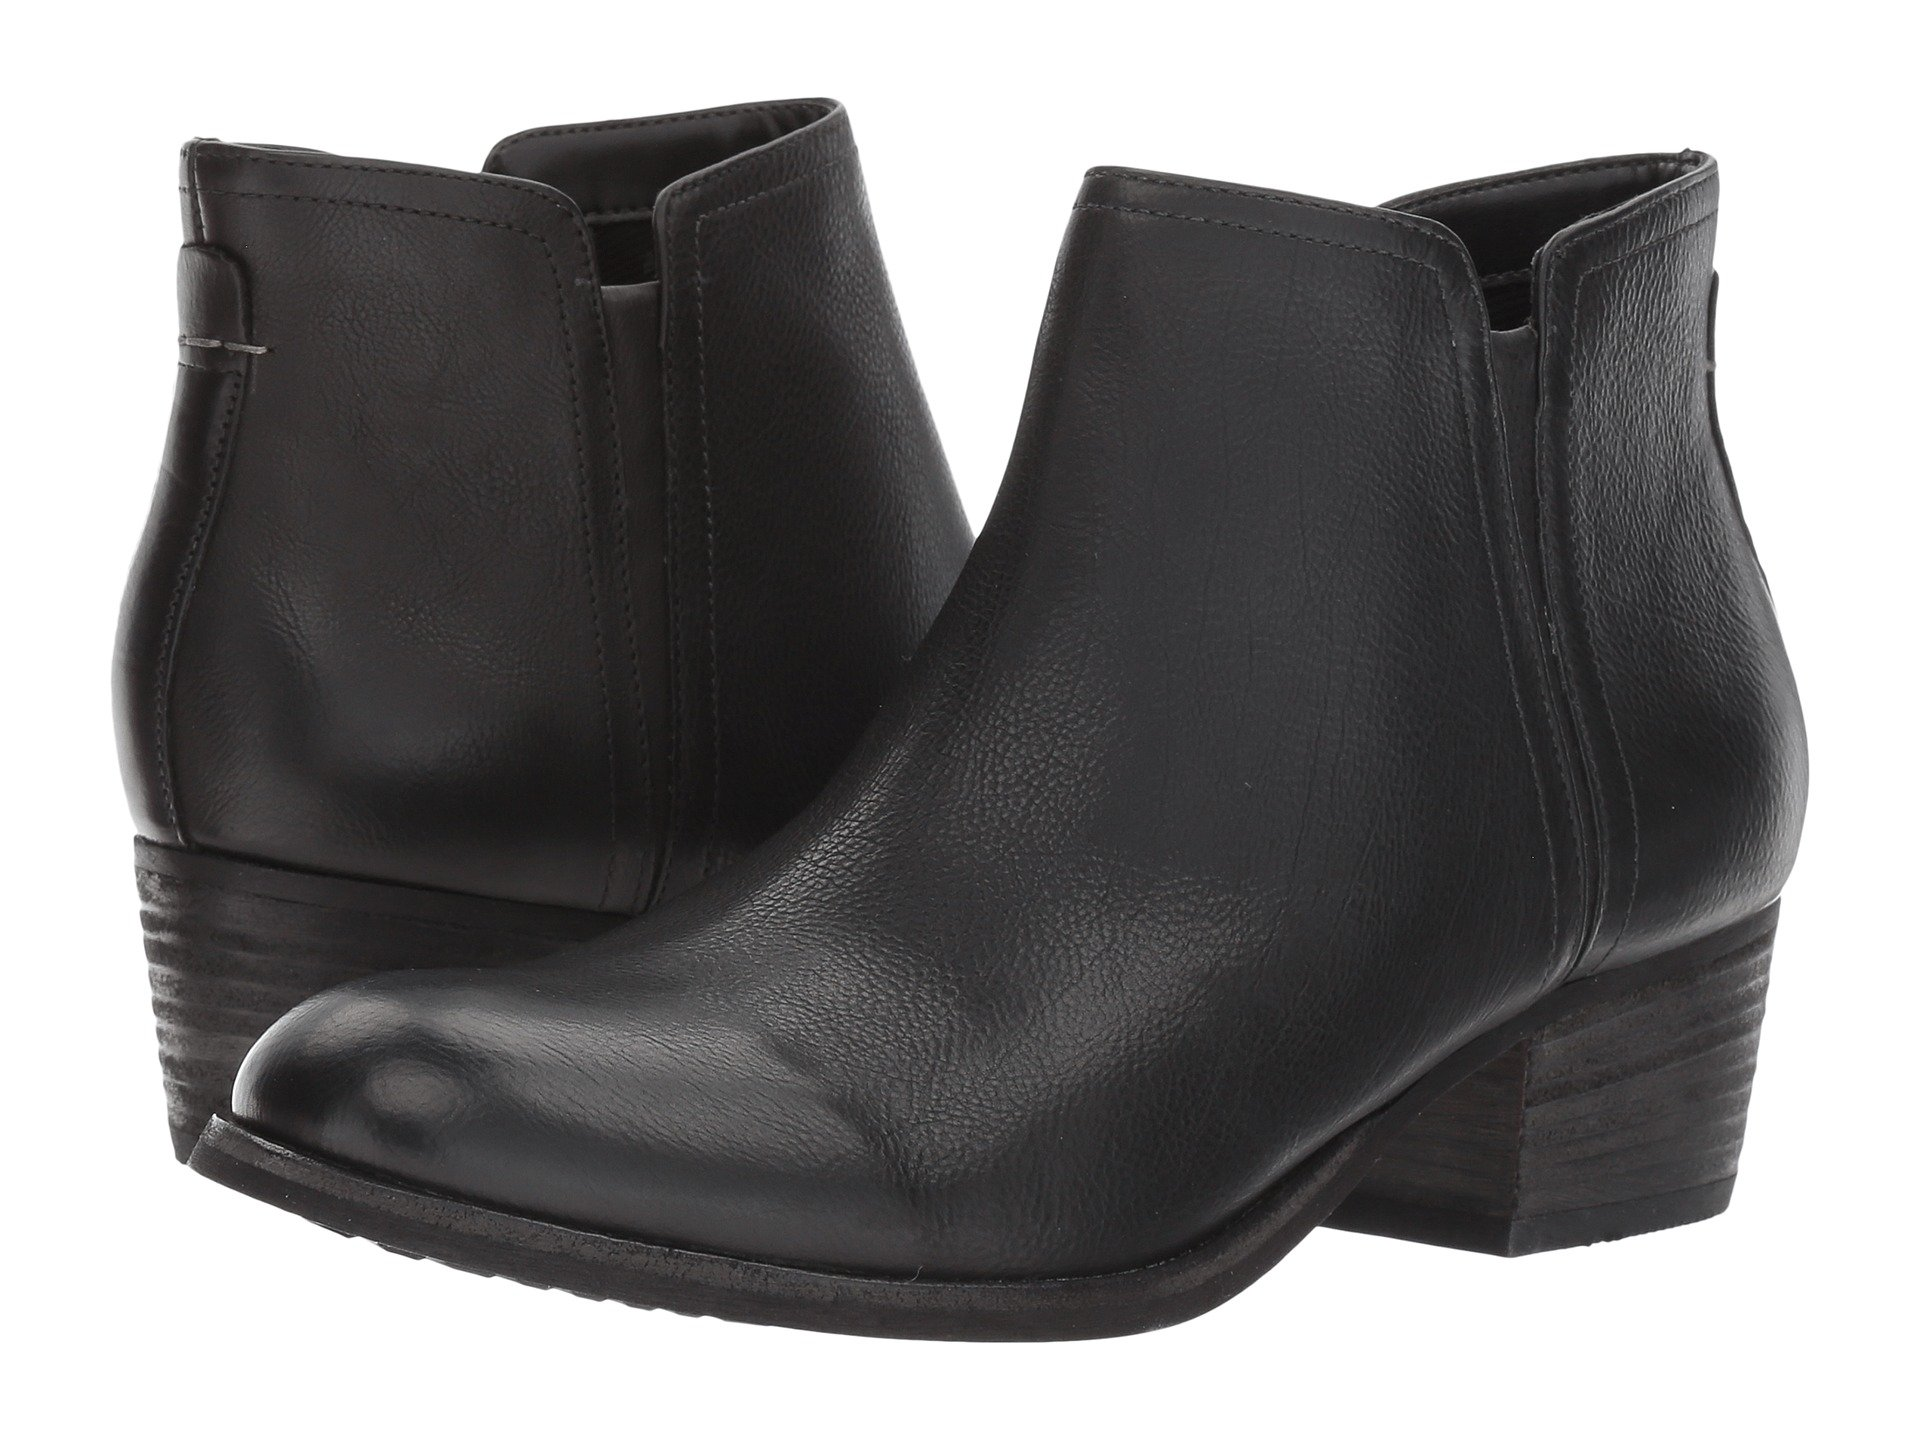 a76f7b67c Women's Clarks Boots + FREE SHIPPING | Shoes | Zappos.com